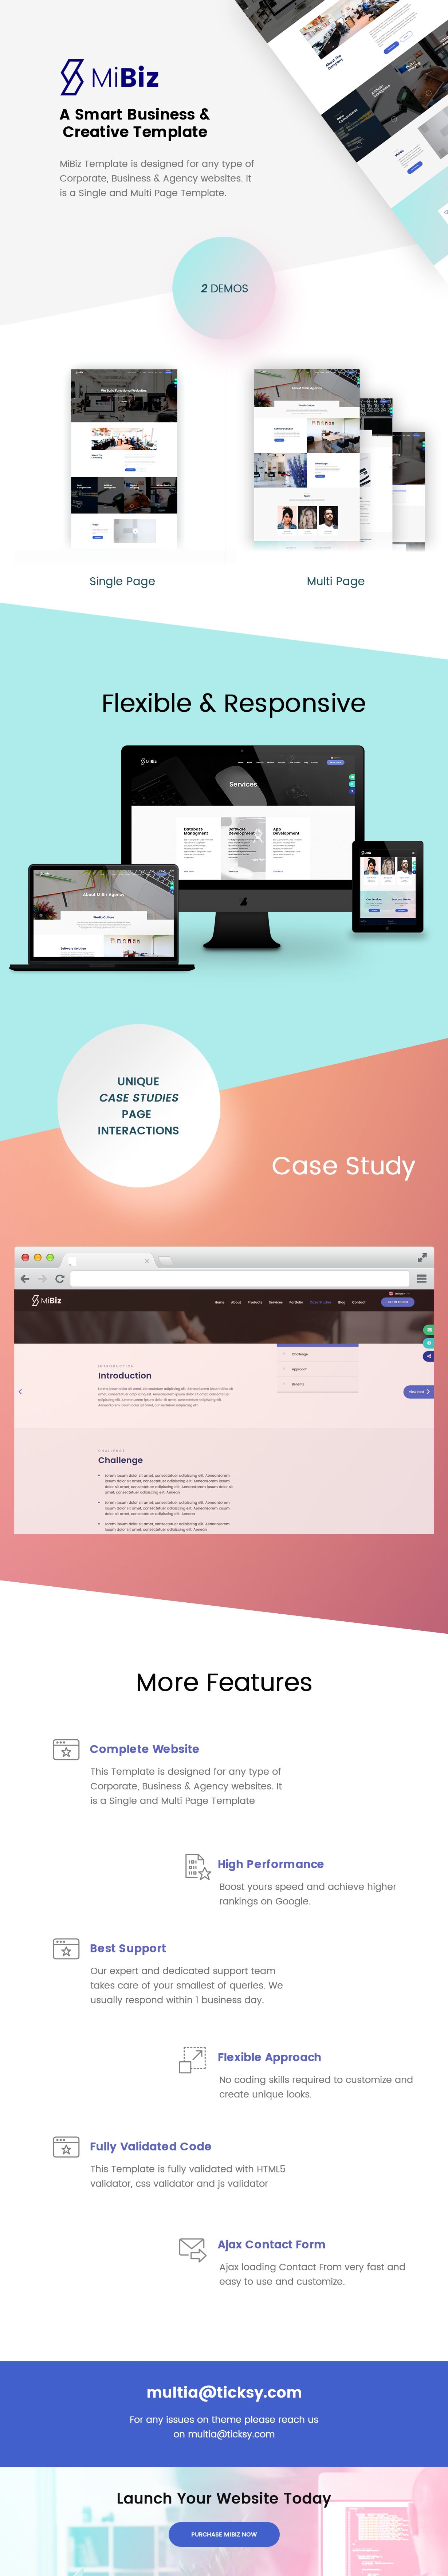 MiBiz- A Smart Multipurpose Template for Business & Agencies. - 7